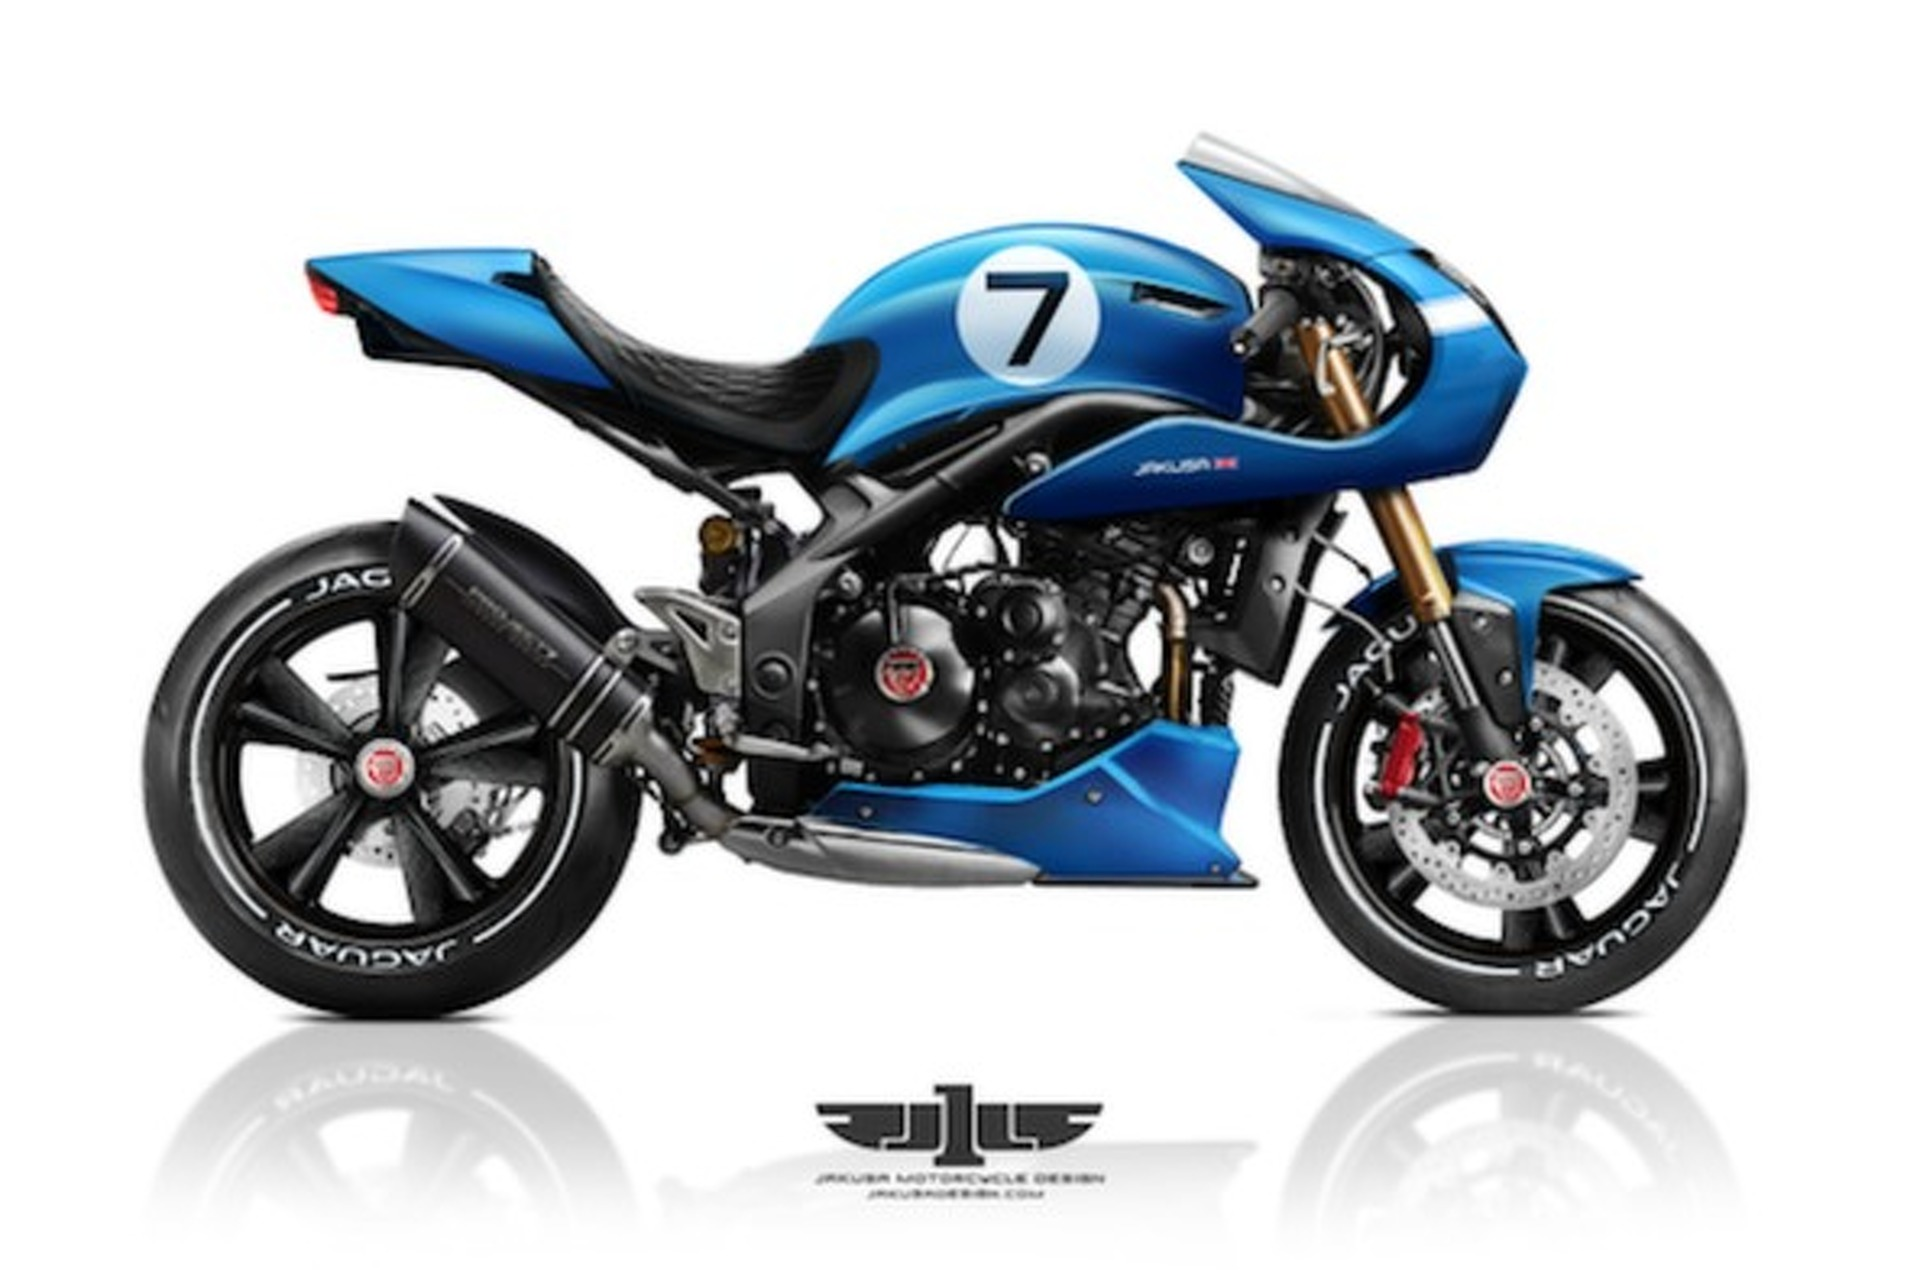 Jaguar Project 7 Motorcycle Concept is Stunningly Beautiful